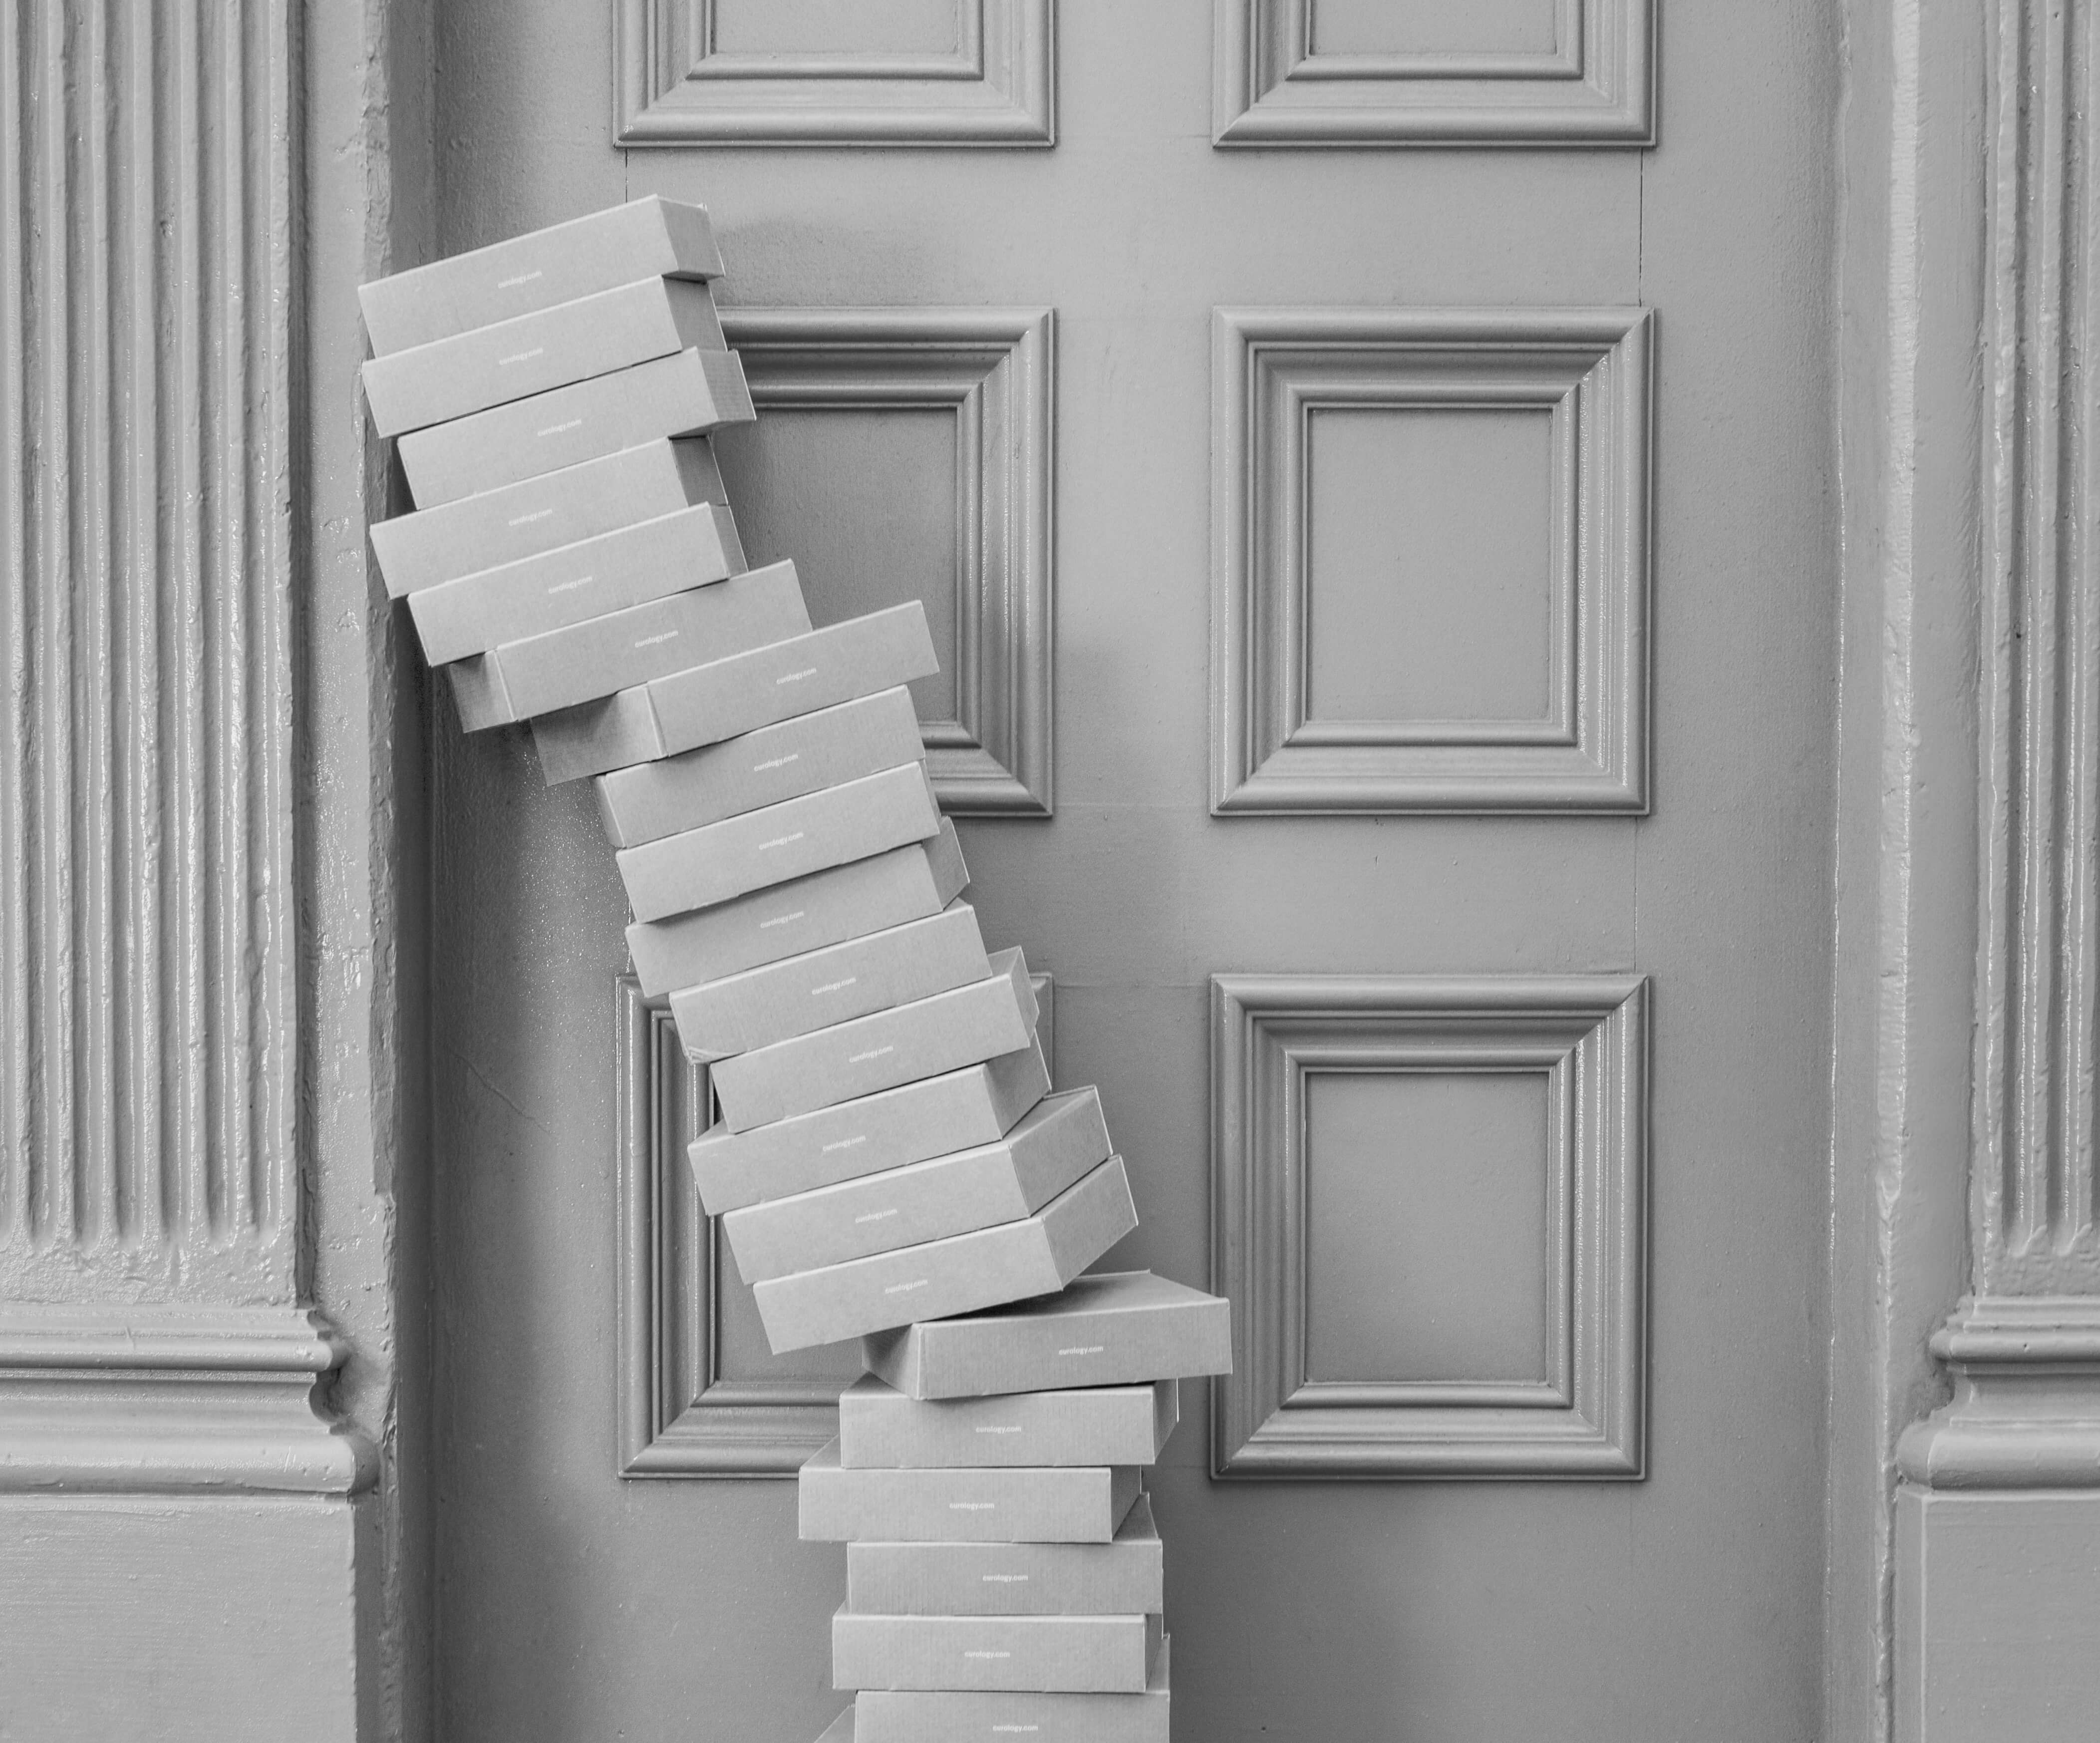 stacked boxes on a door way